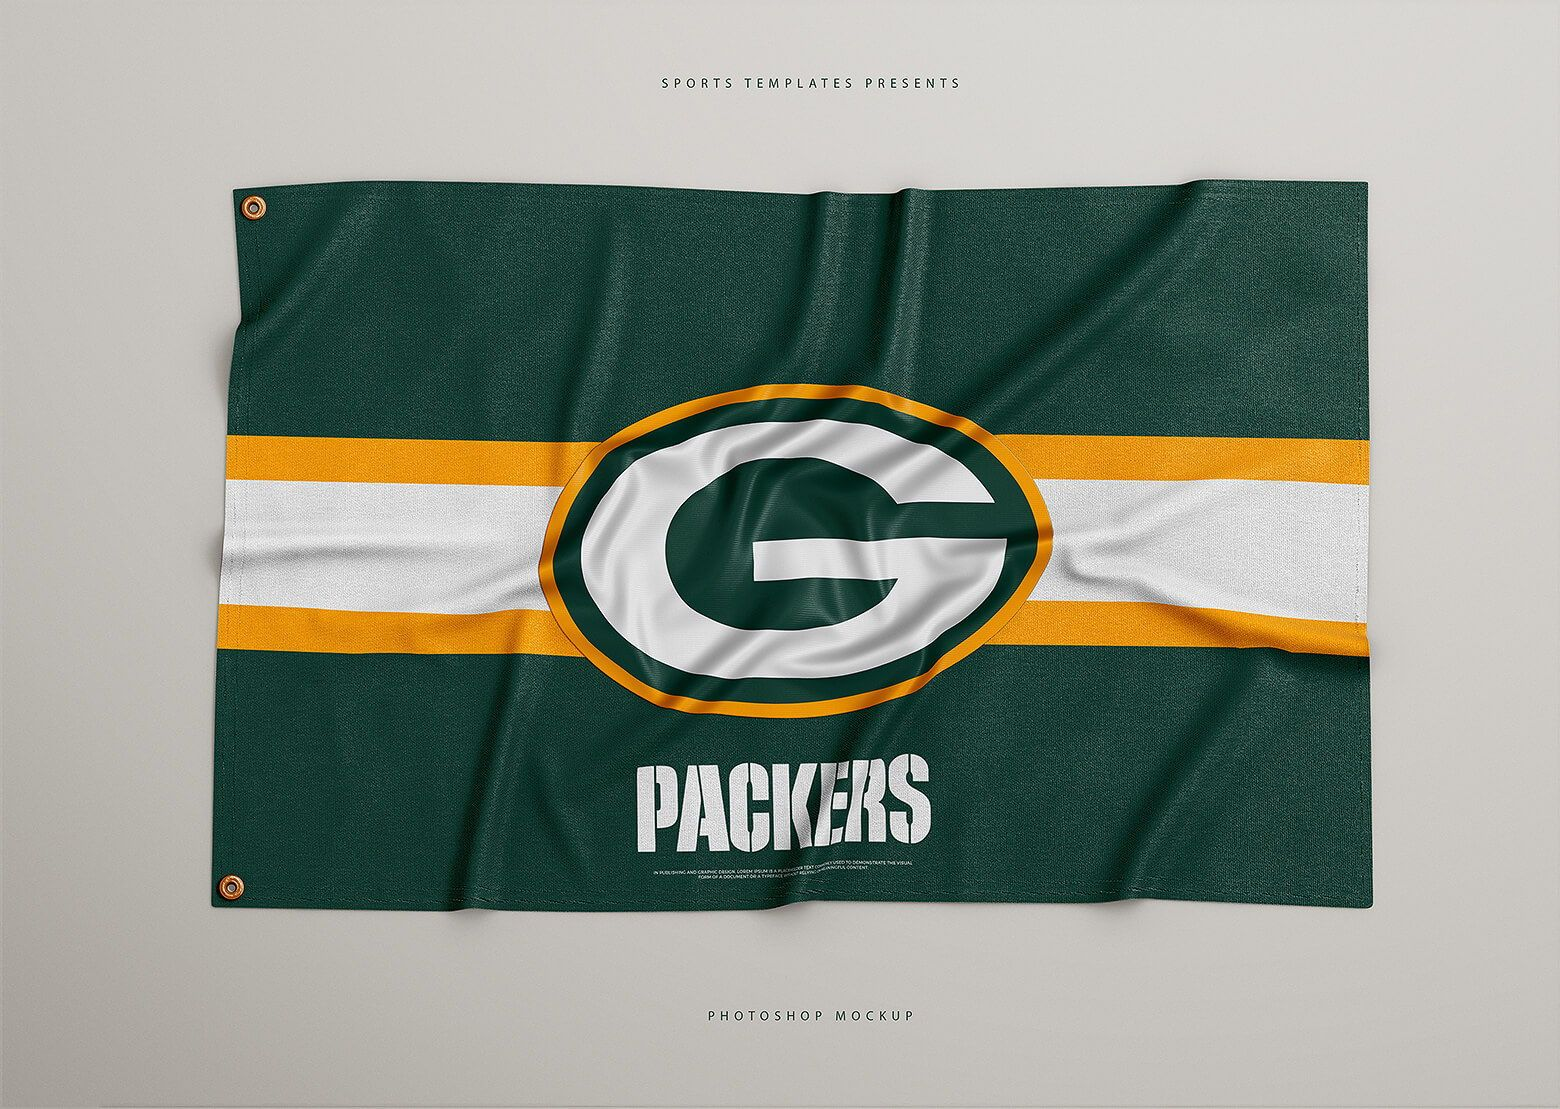 Download Sports Flags Photoshop Template Sports Flags Photoshop Template Photoshop Mockup